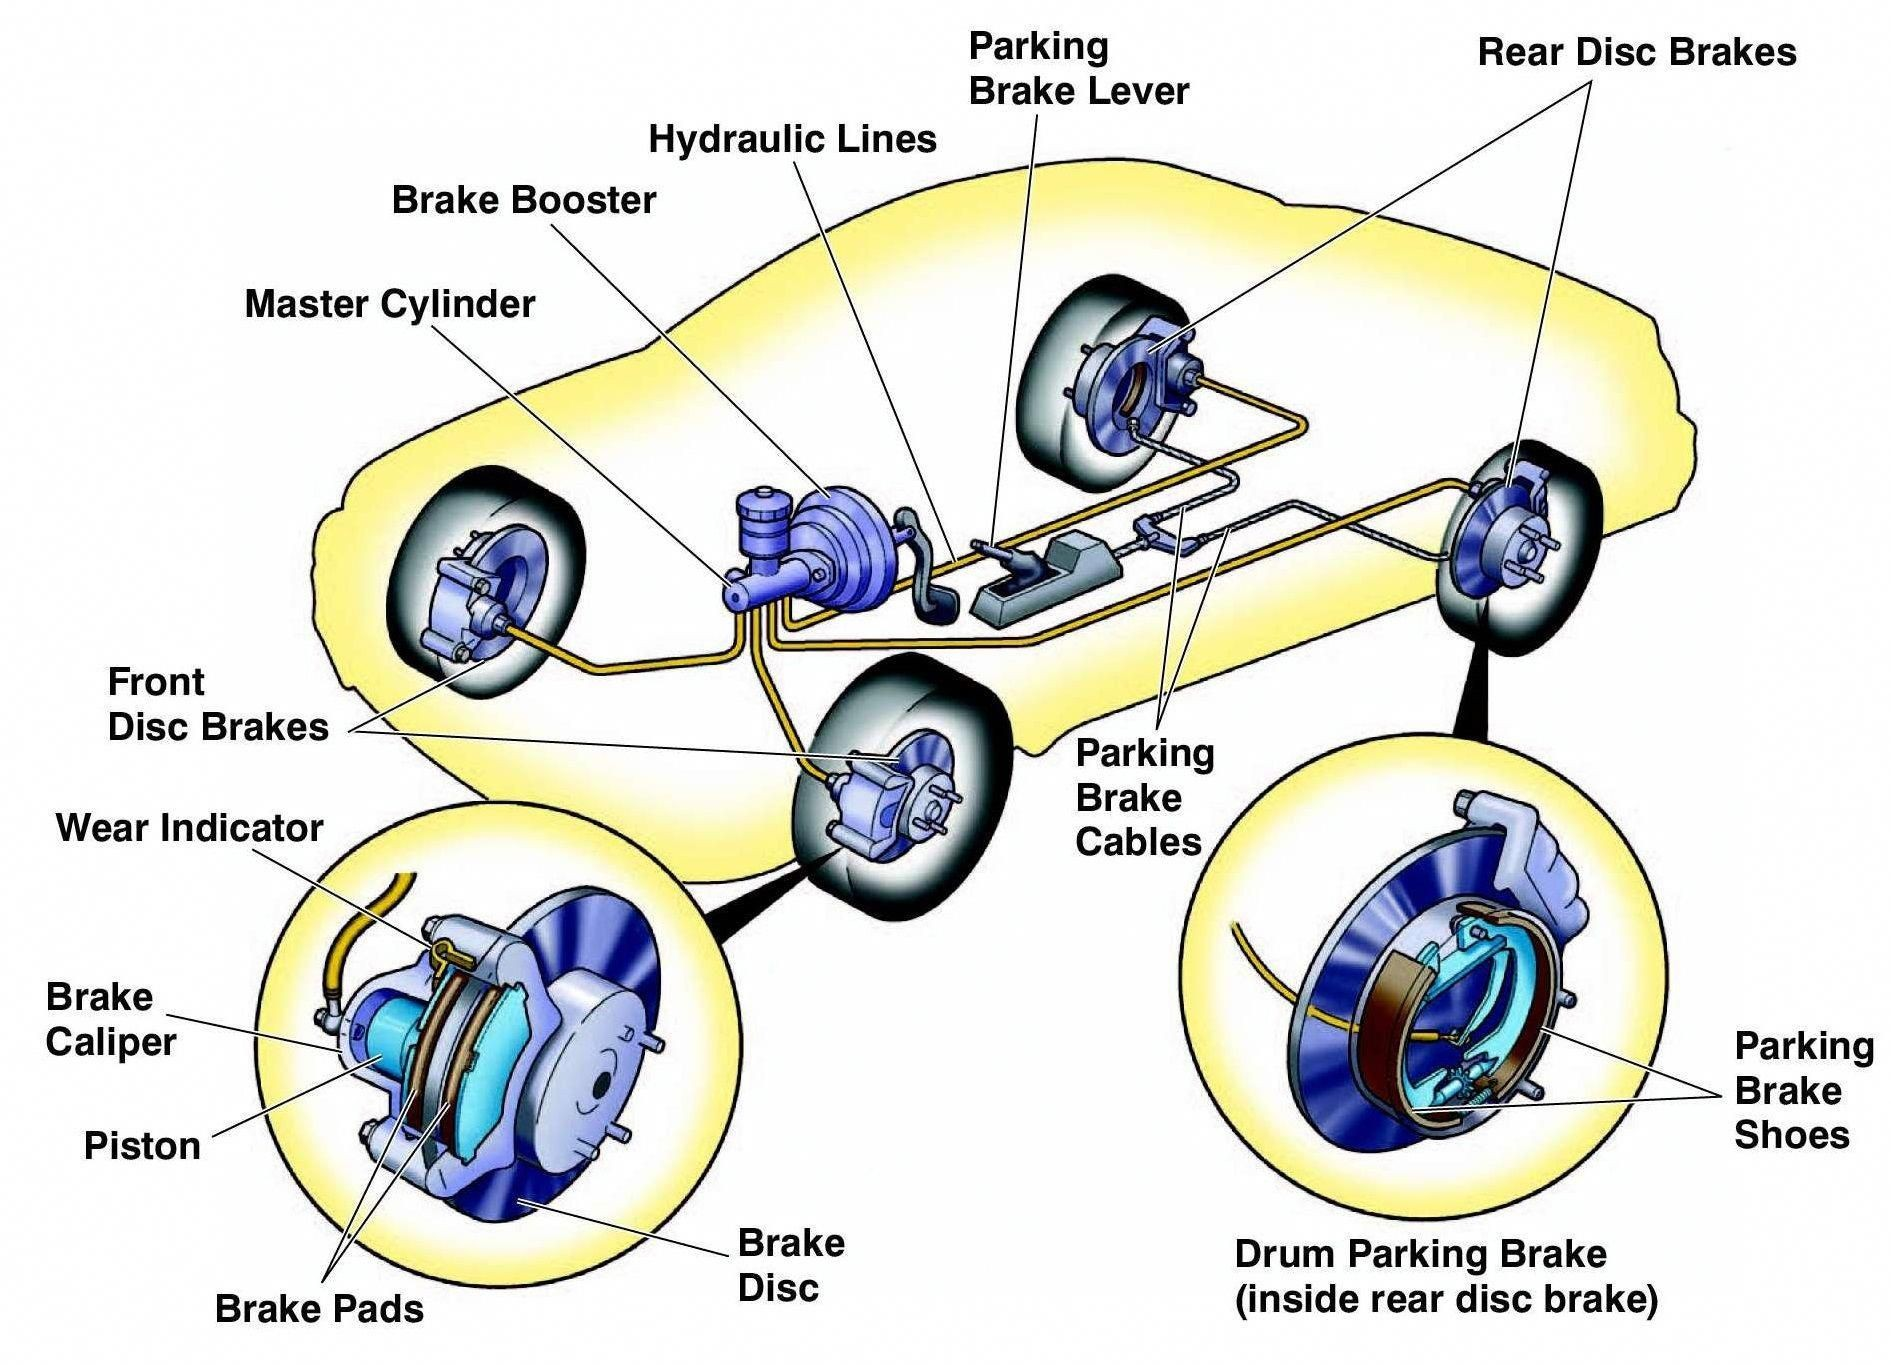 Inside Of A Car Diagram Pin by Twenty Four Diagnostics On Car Care Repair and Of Inside Of A Car Diagram